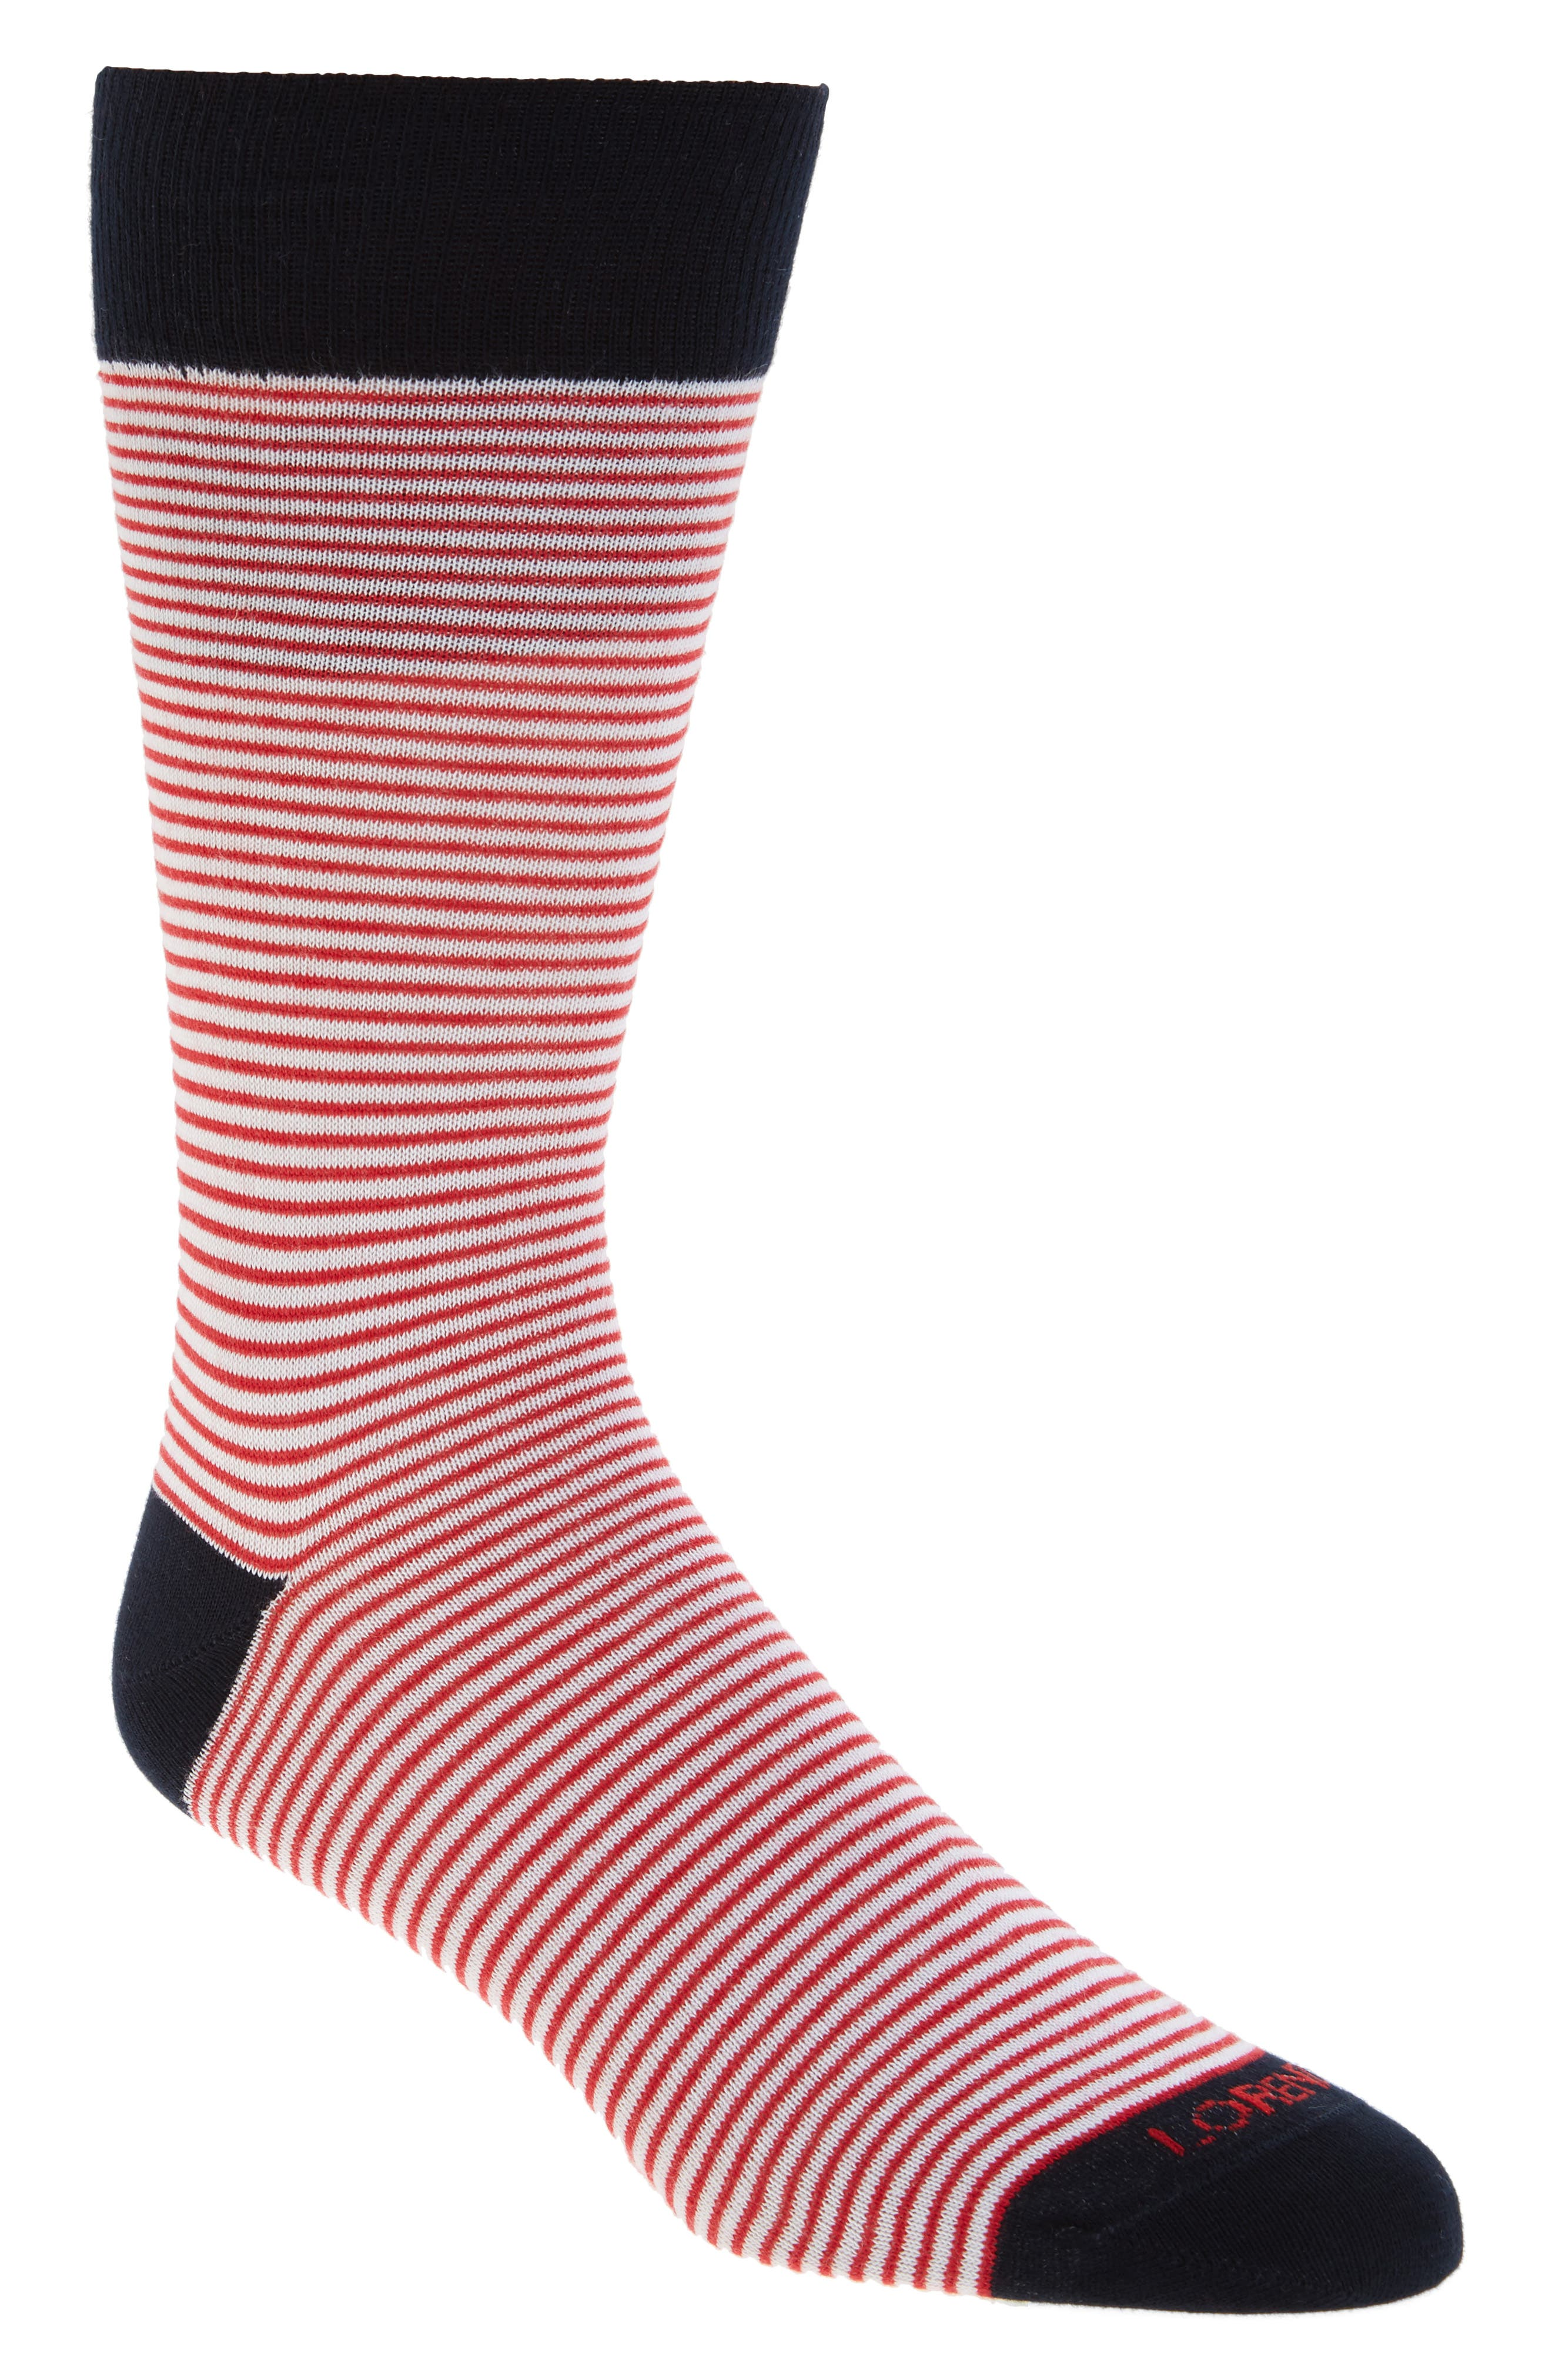 Lorenzo Uomo Mini Stripe Crew Socks (3 for $30)